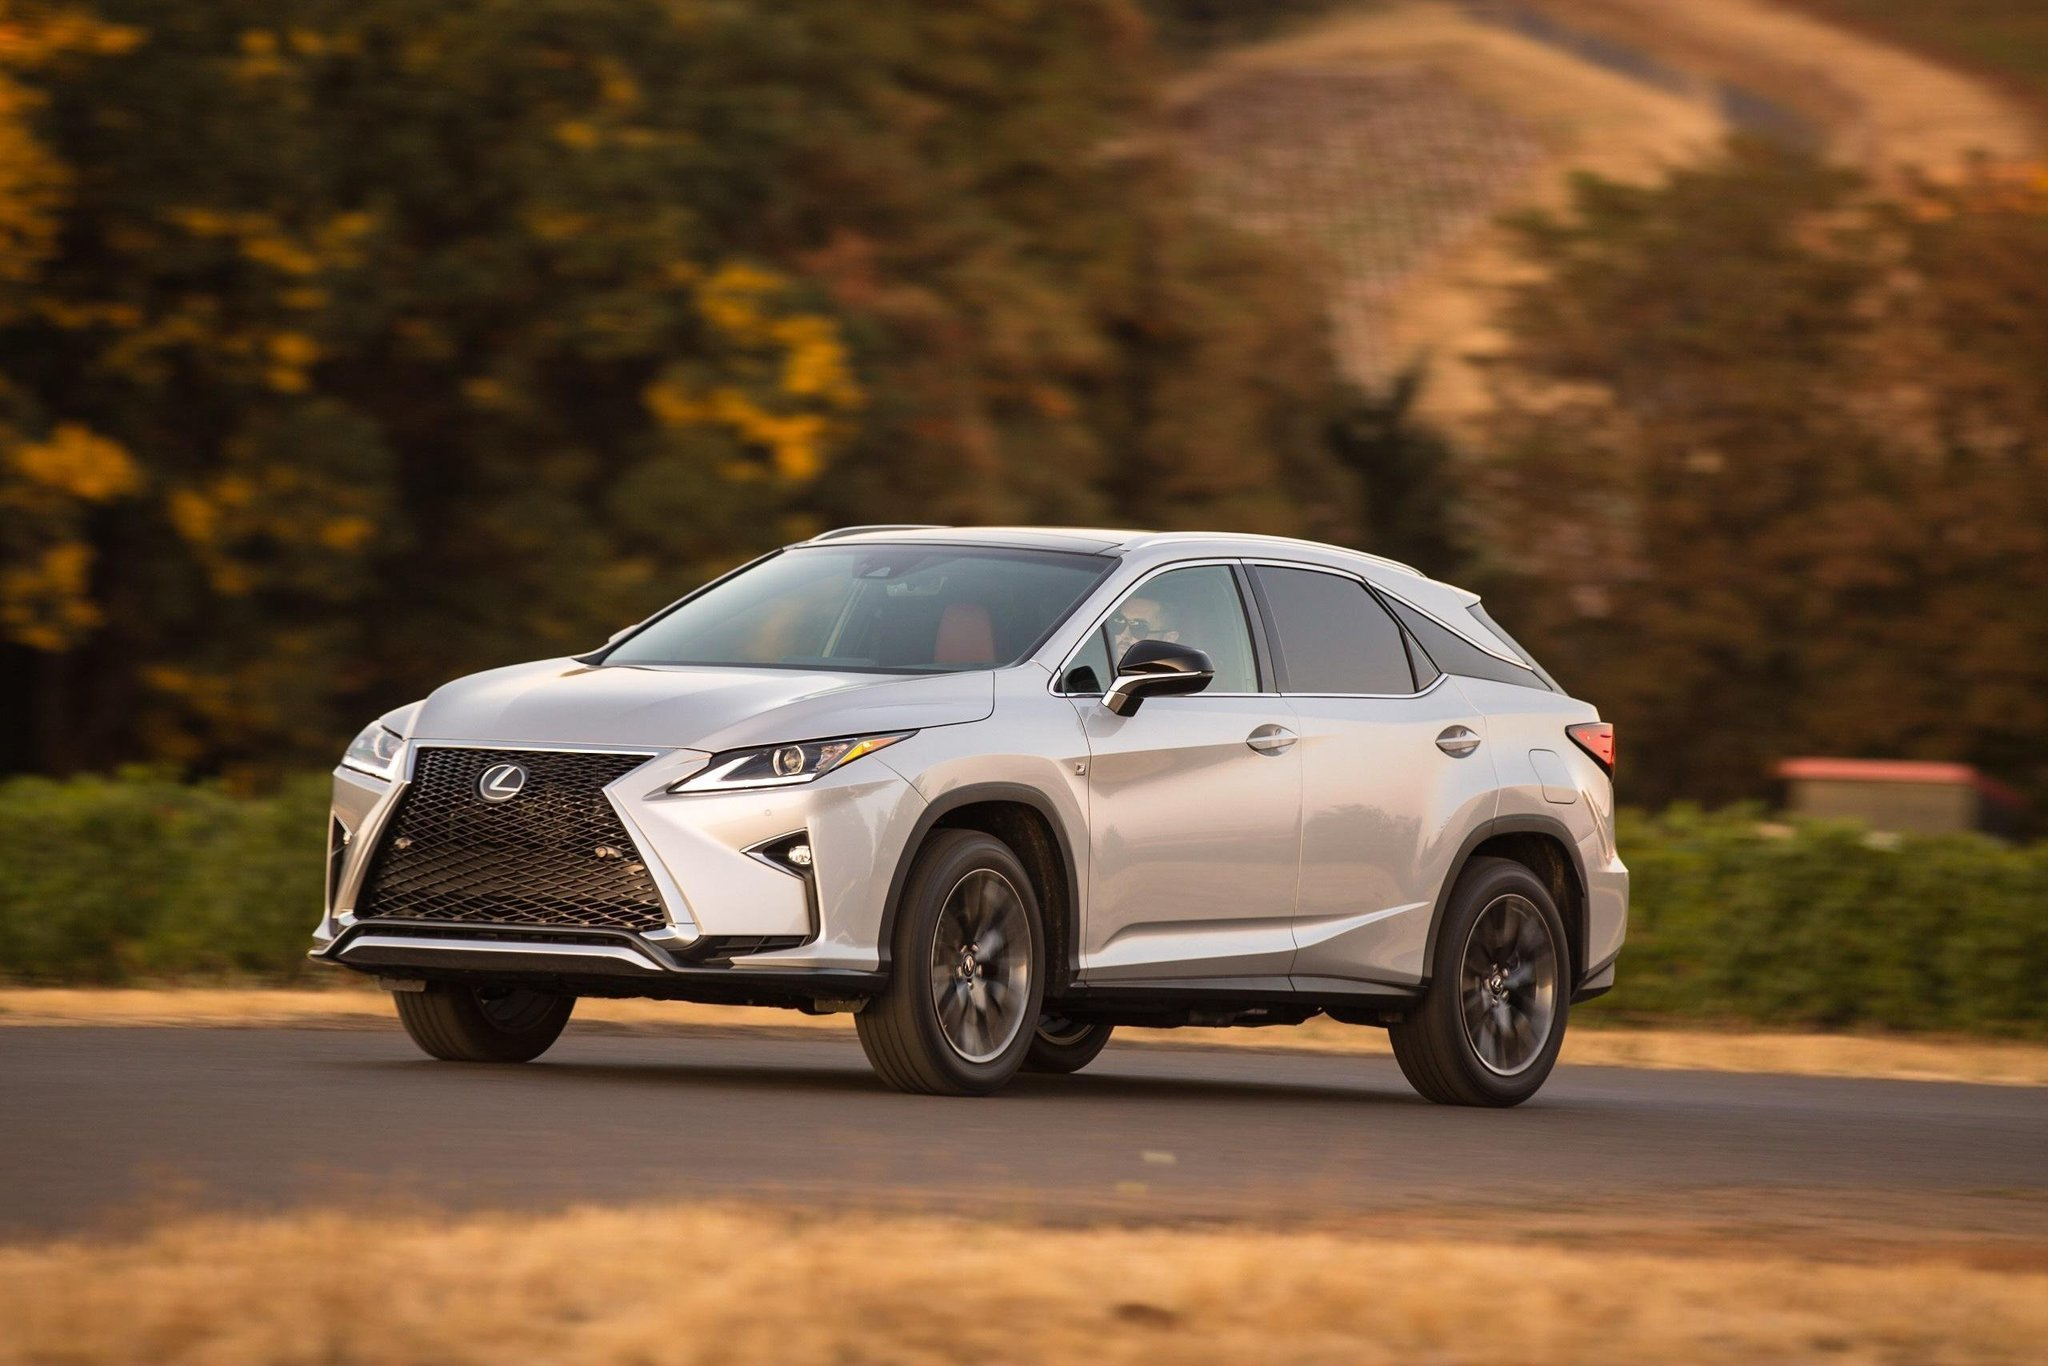 Fourth Generation 2016 Lexus Rx Midsize Crossover Redesigned For Style Ride Comfort And Luxury The San Go Union Tribune